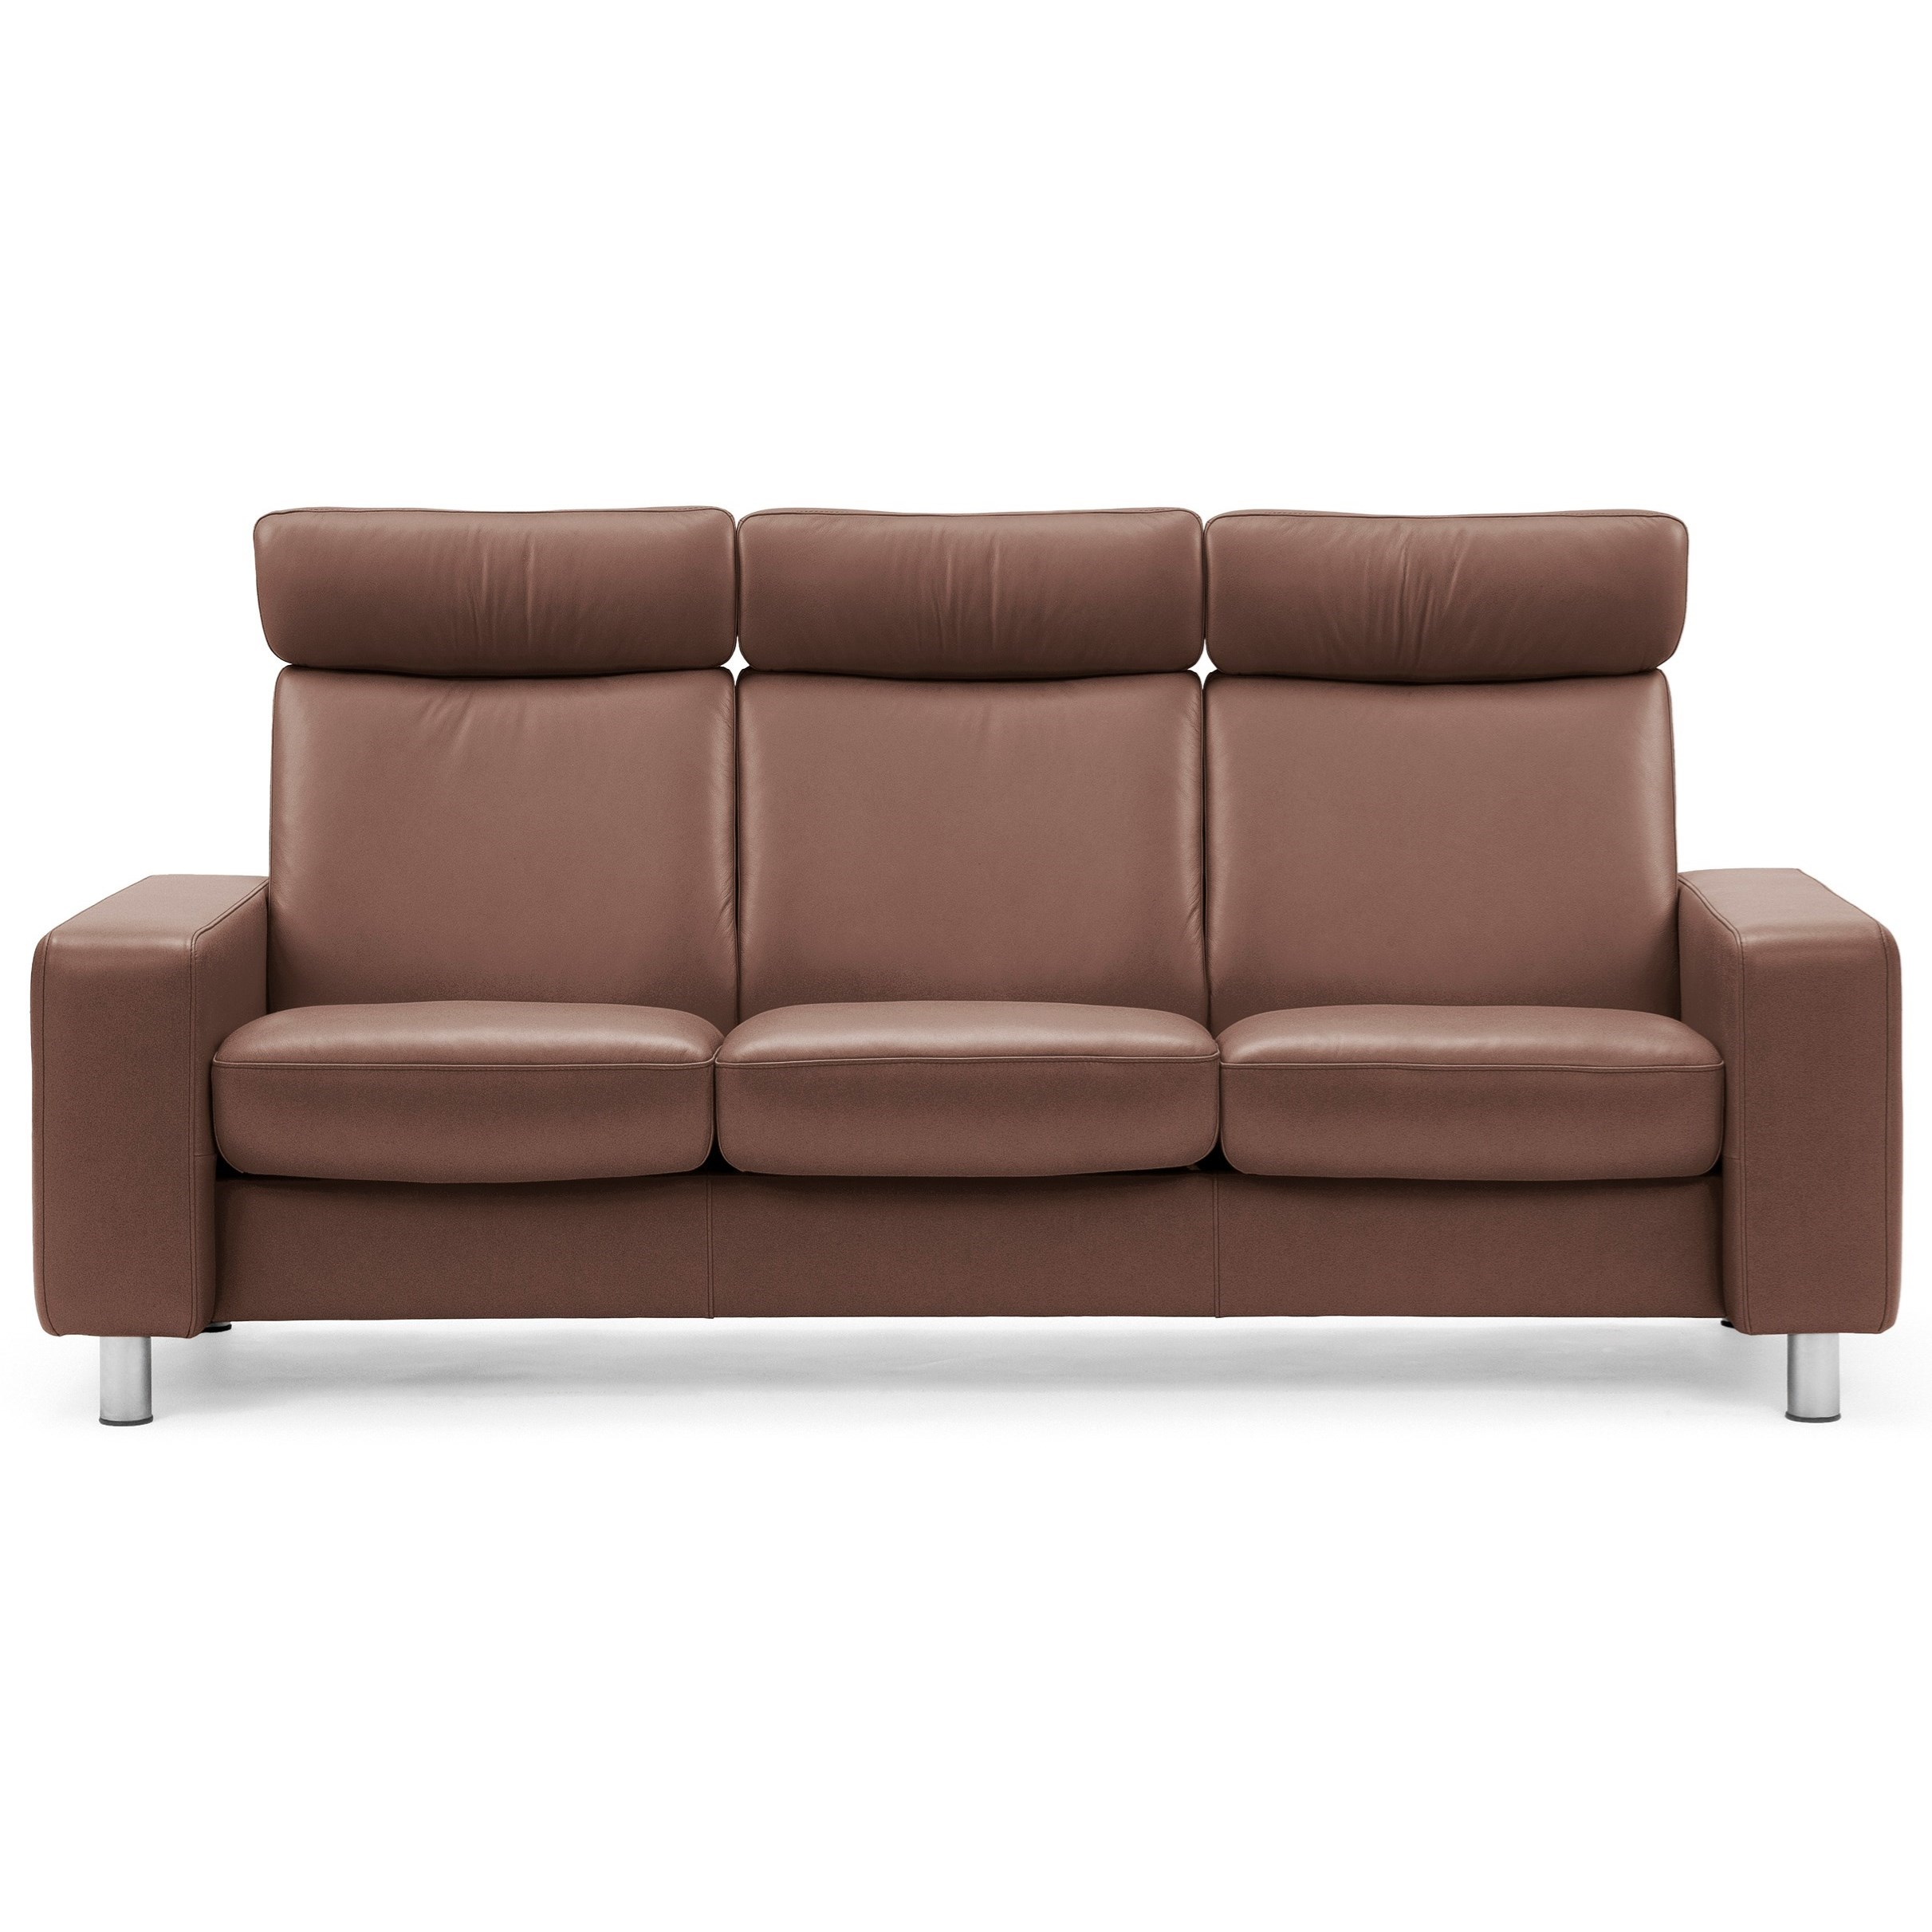 Arion 19 - A20 High-Back Reclining Sofa by Stressless at Bennett's Furniture and Mattresses